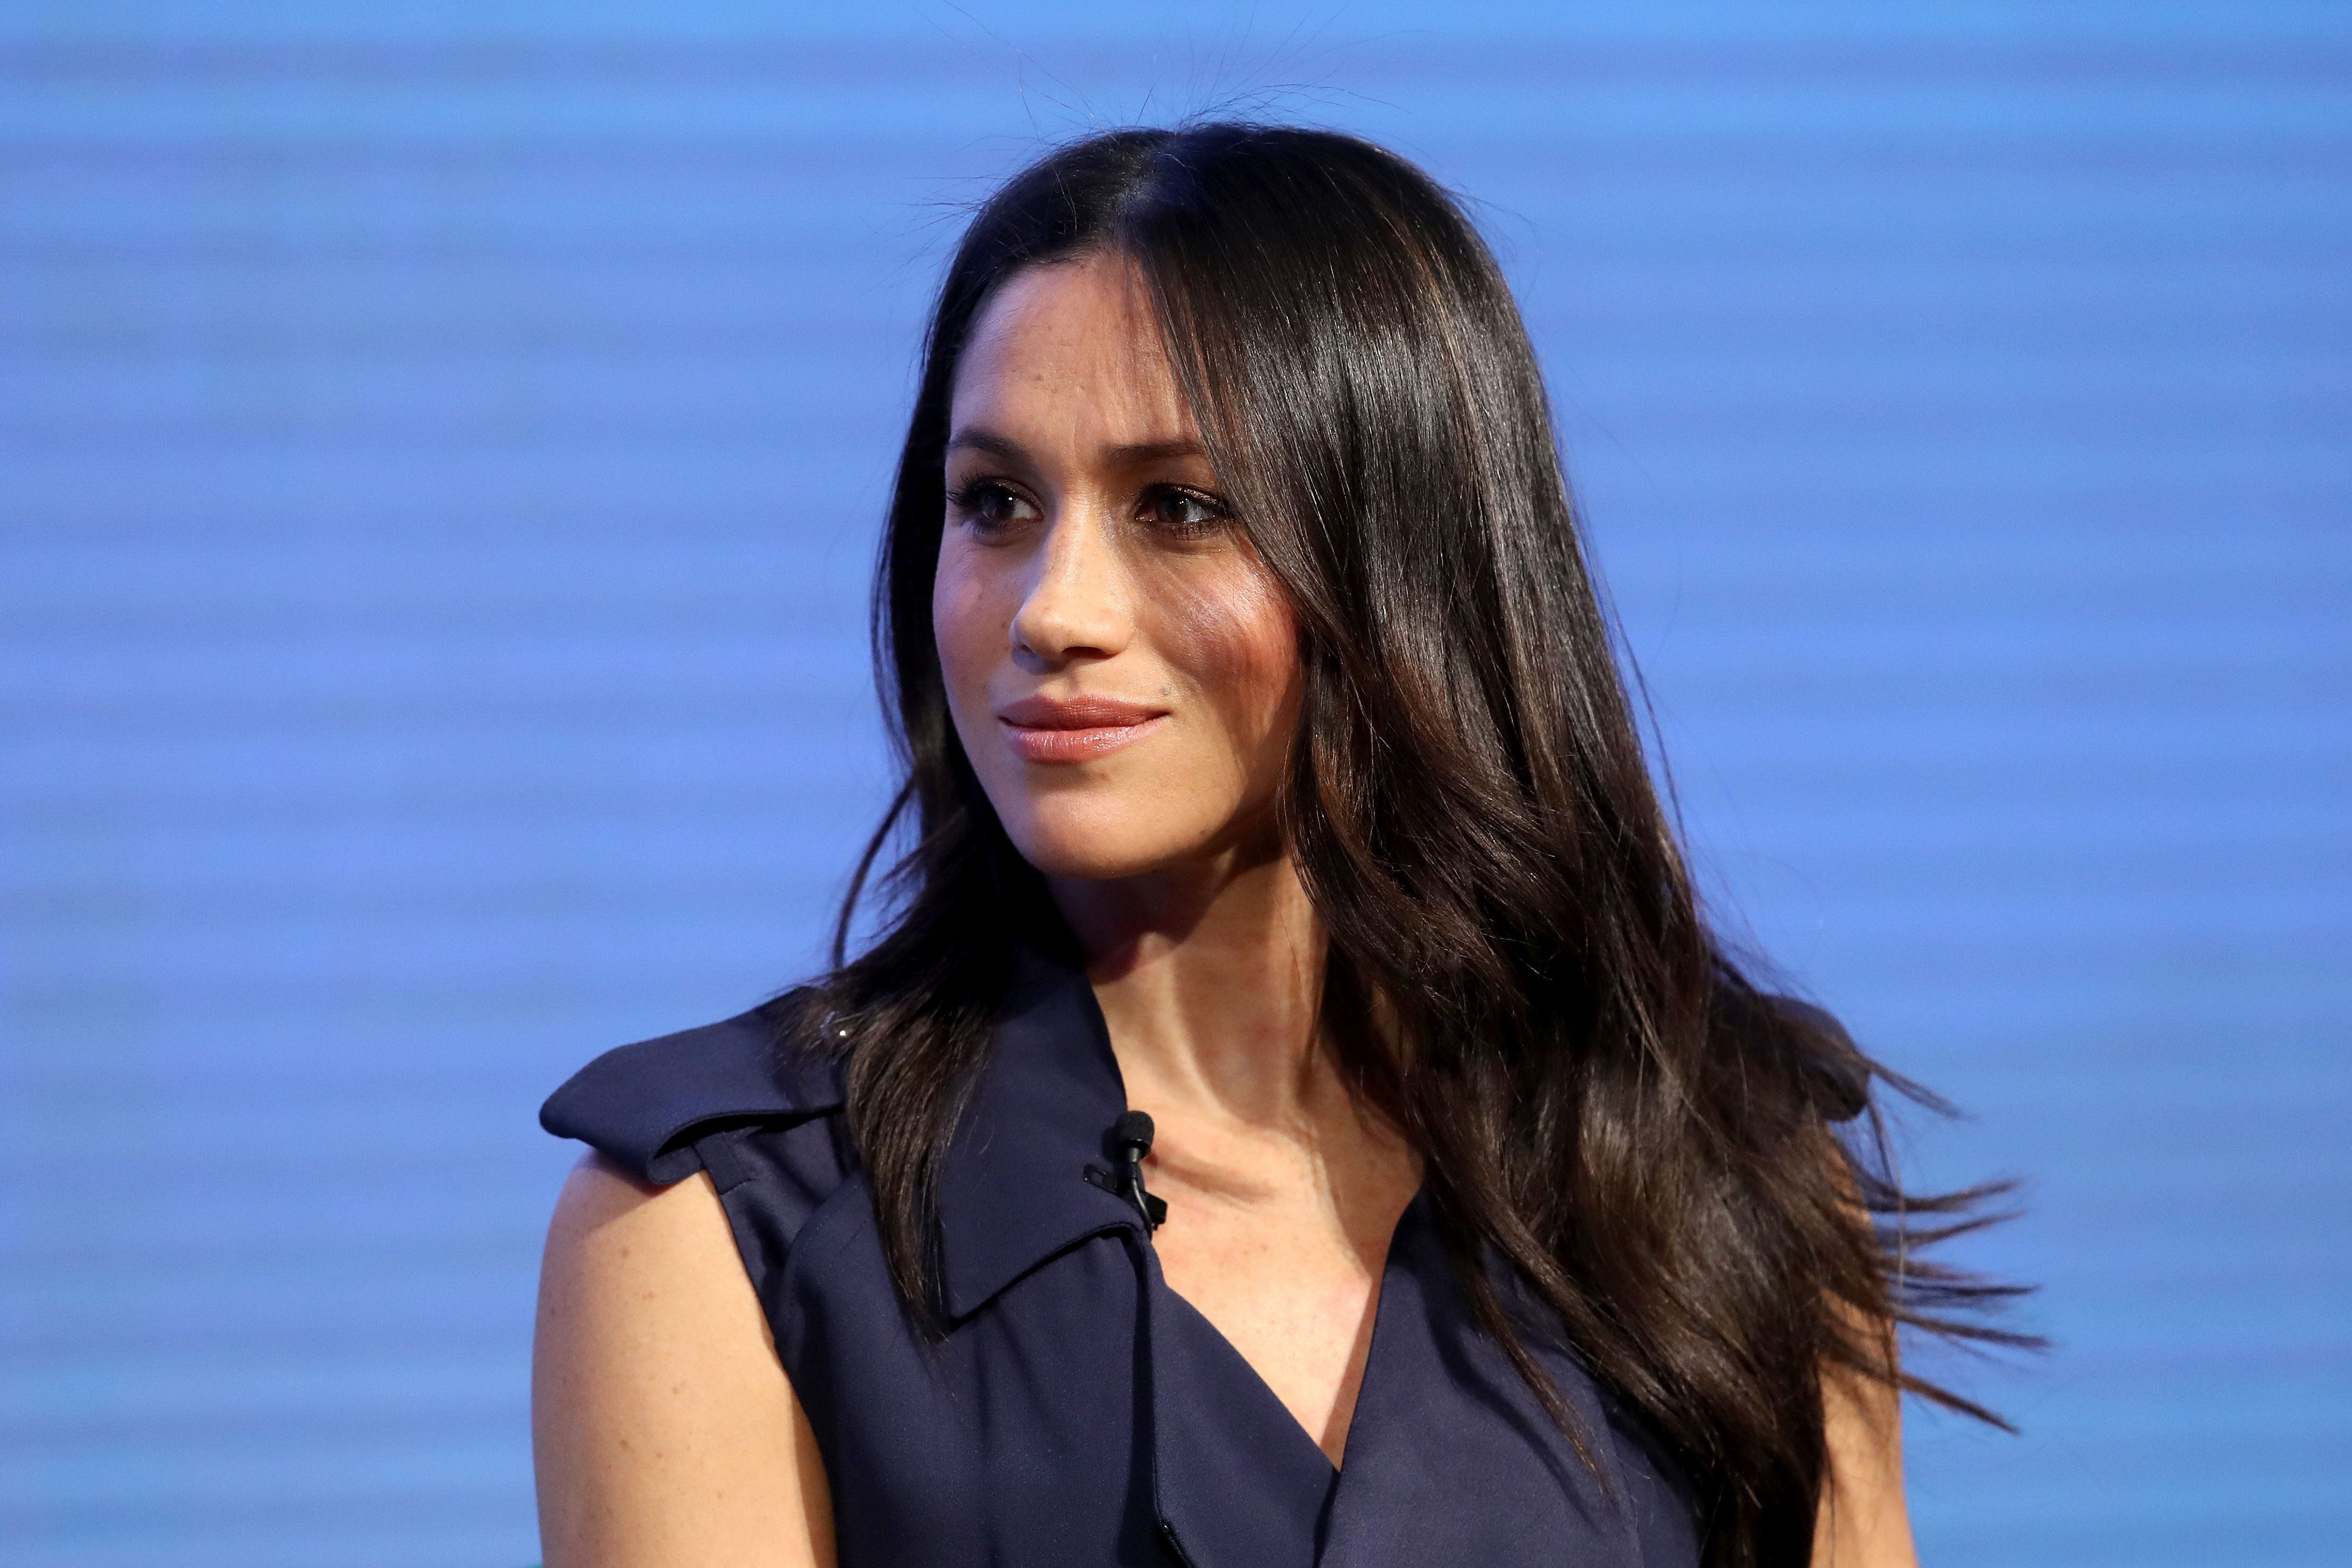 Meghan Markle Will Bring 'Sassiness' To Royal Family, Says Former Vogue